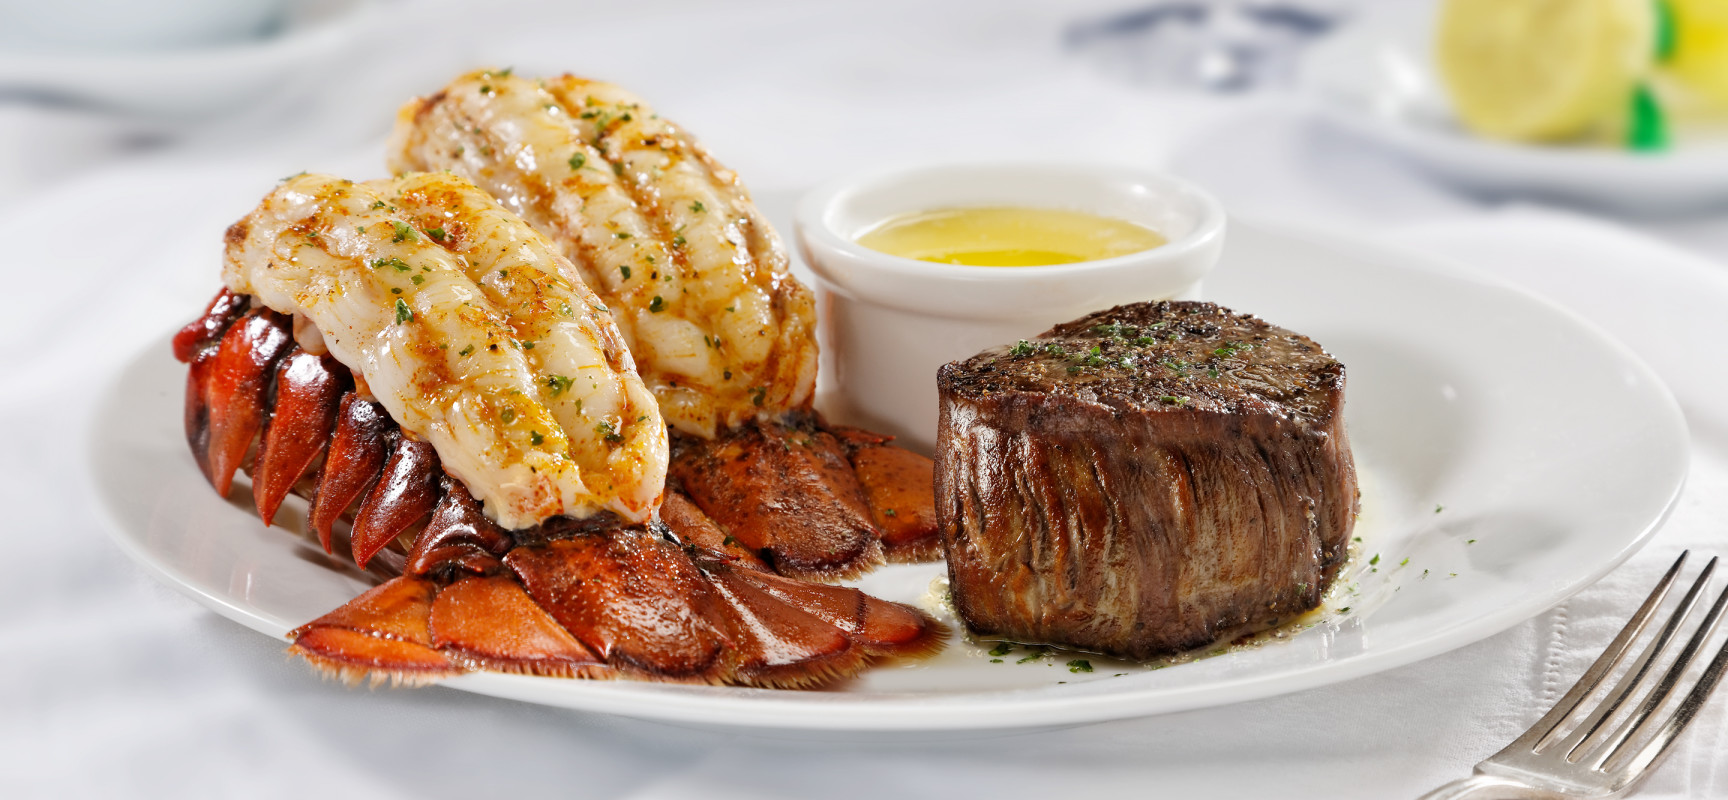 If you want steak, you want Ruth's Chris. At Ruth's Chris Steak House, your meal is specifically tailored to satisfy your exact desires. From the cut of choice beef to the preparation and perfect temperature, you'll wonder how you ever ate steak any other way.